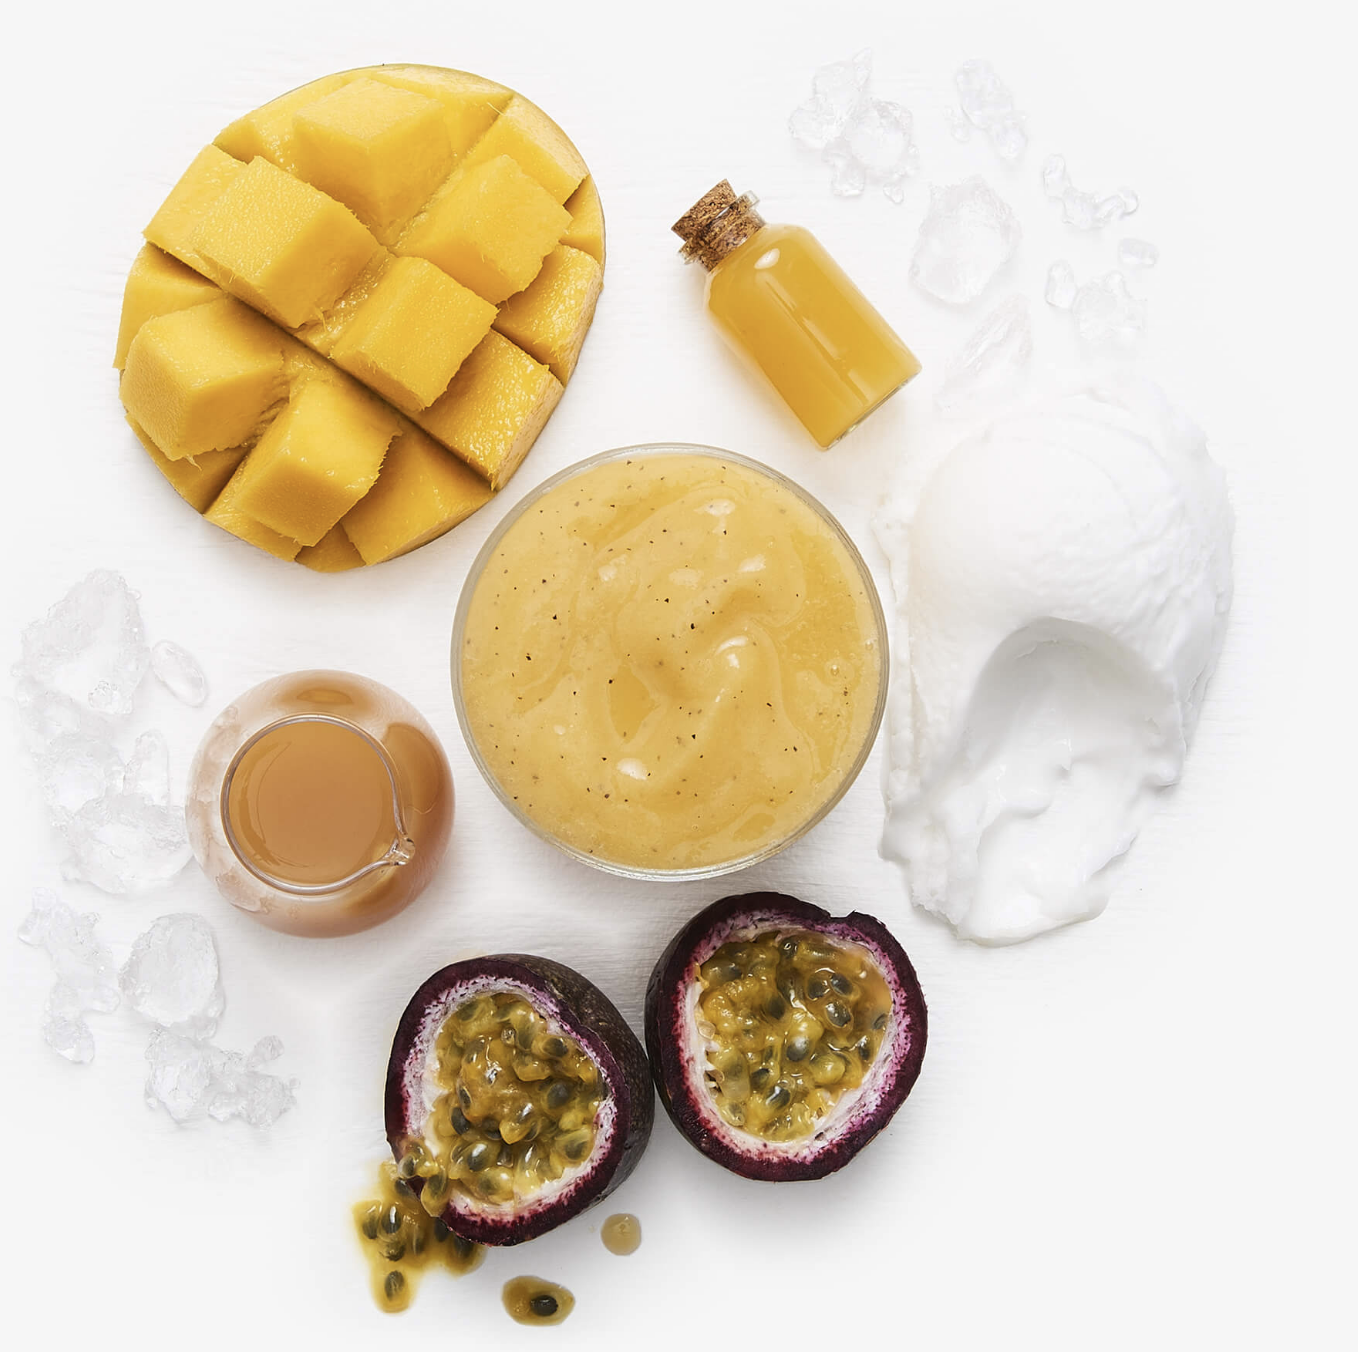 #4 Mango Tango Crush - Drinking this is like a giant kapow in your mouth! The blend of Passionfruit, Mango Nectar, Sorbet, Tropical Juice, Mango & Ice will delight your tastebuds and leave you savouring every last sip!